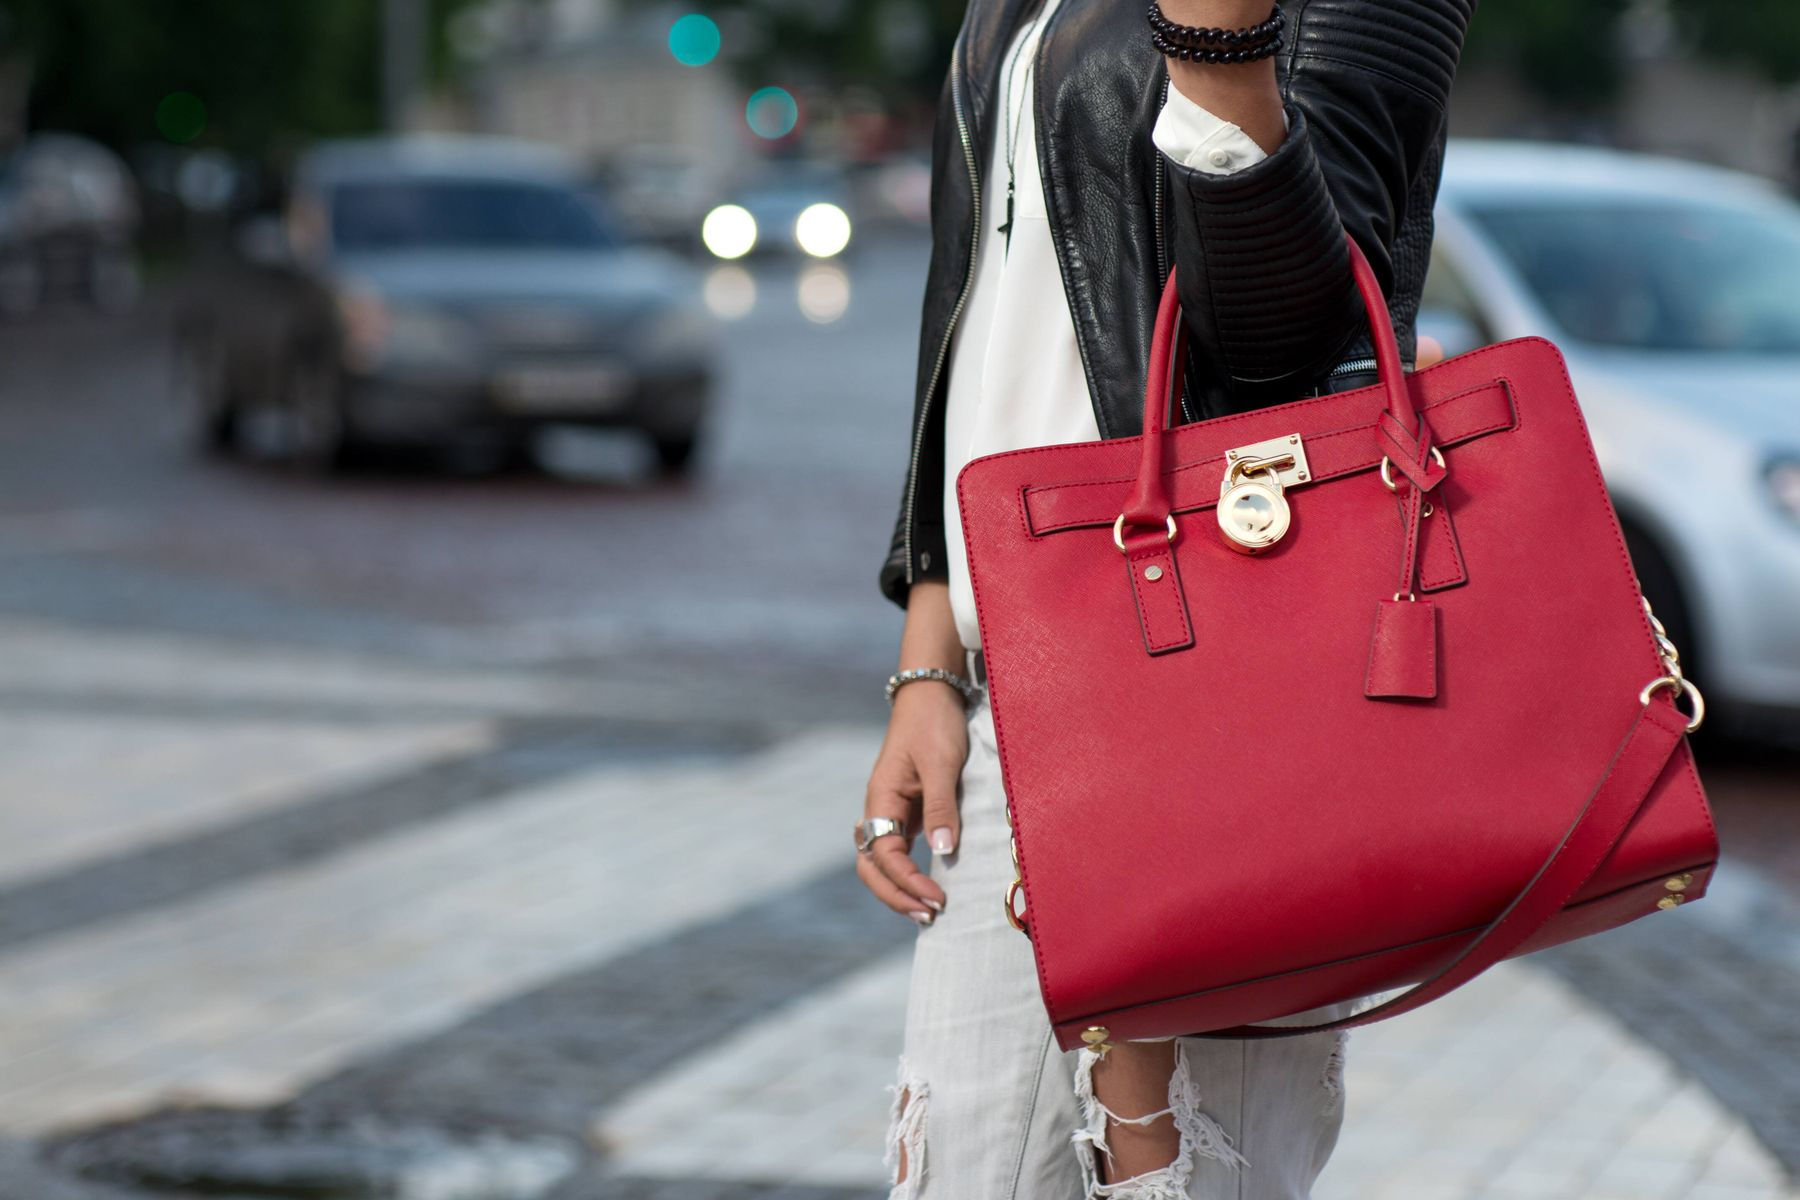 a woman with a red handbag